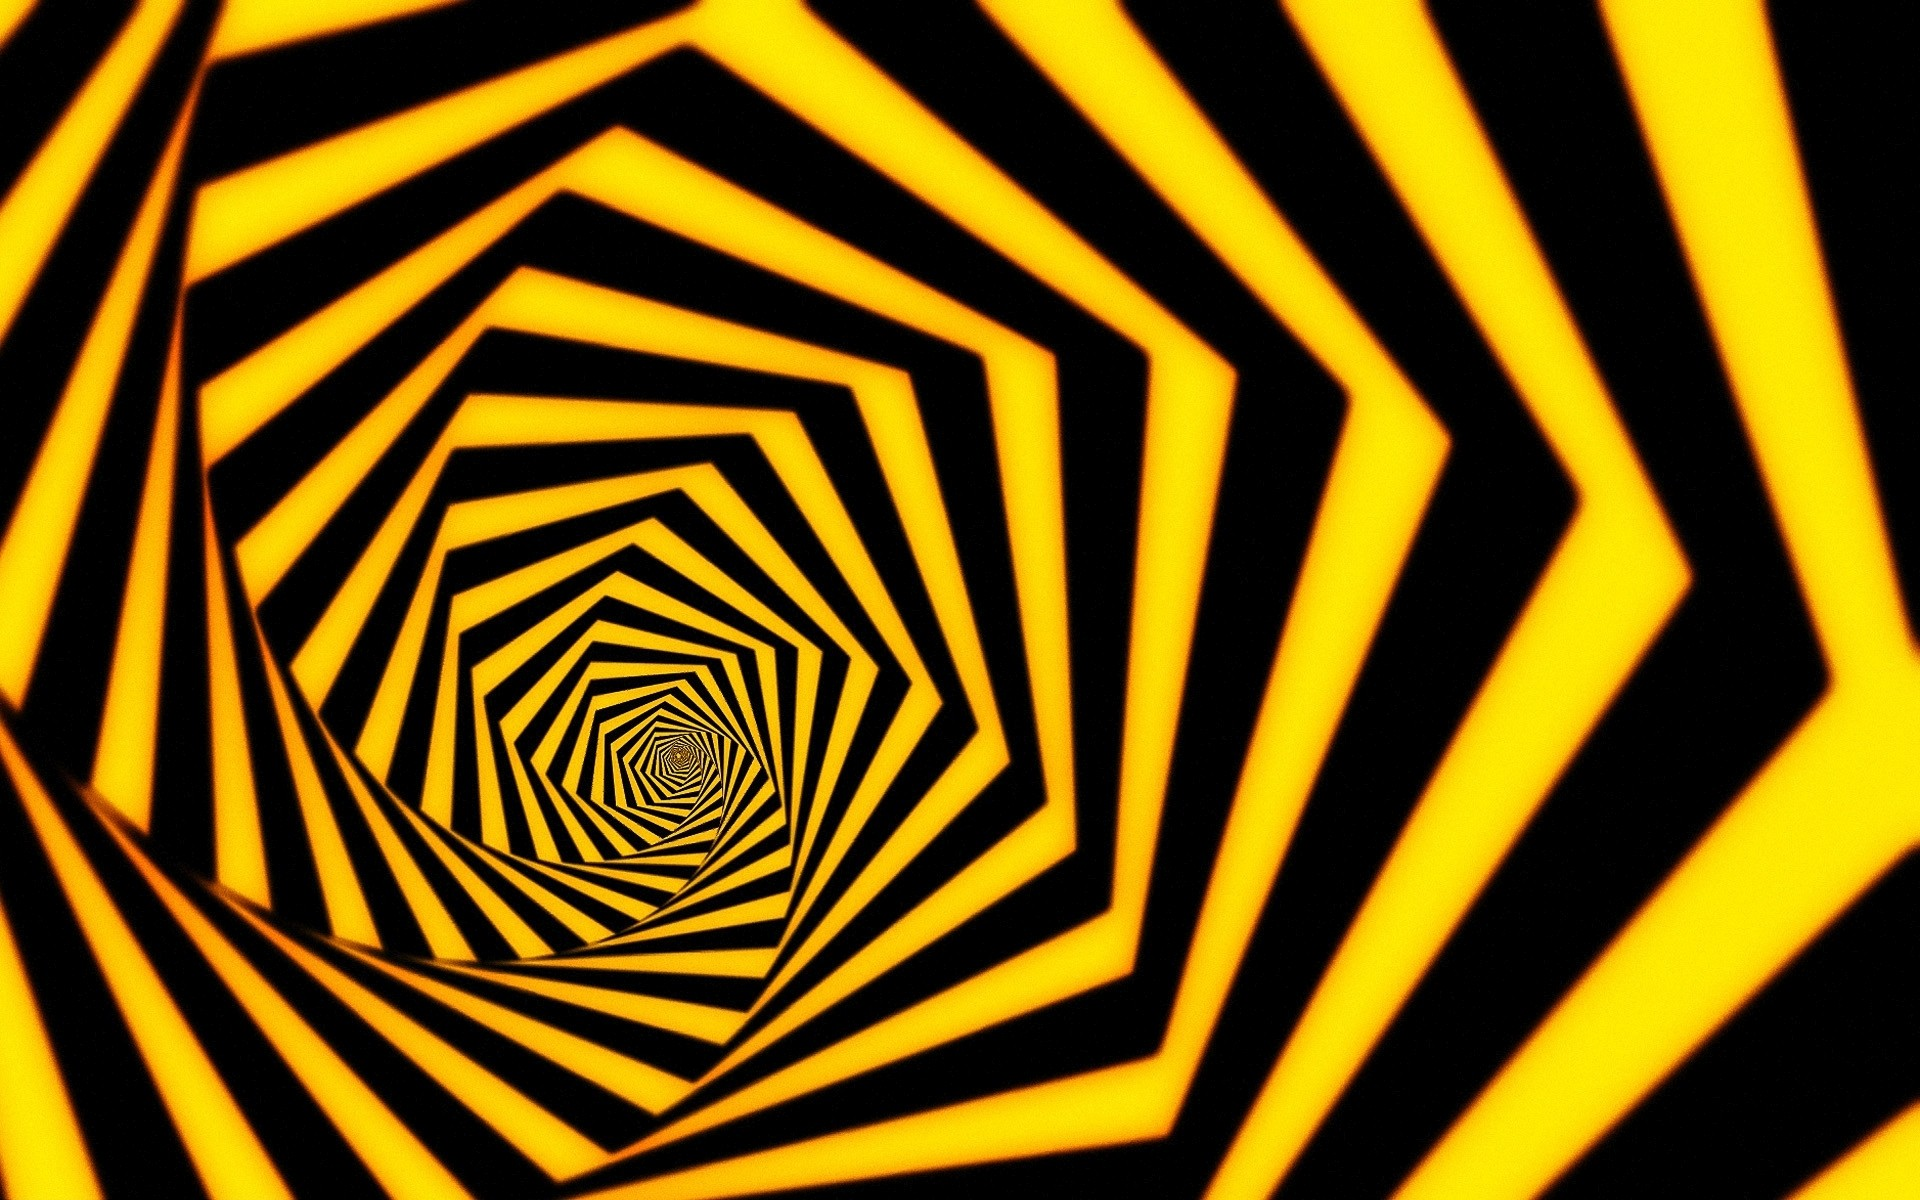 3d Optical Illusion Hd Wallpaper Hypnosis Moving Wallpaper 67 Images